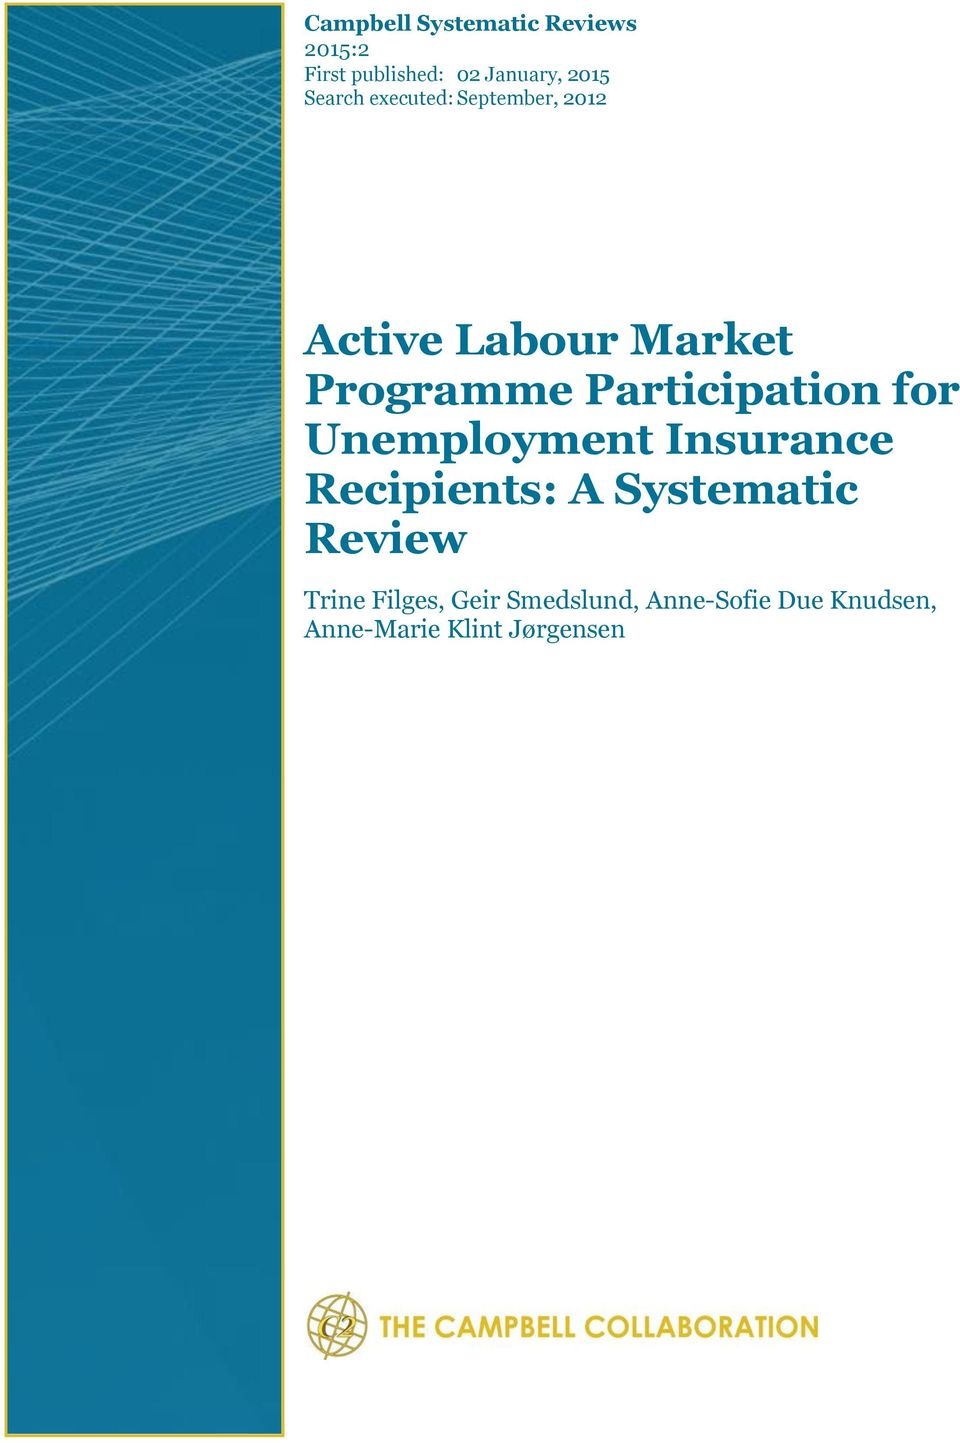 Participation for Unemployment Insurance Recipients: A Systematic